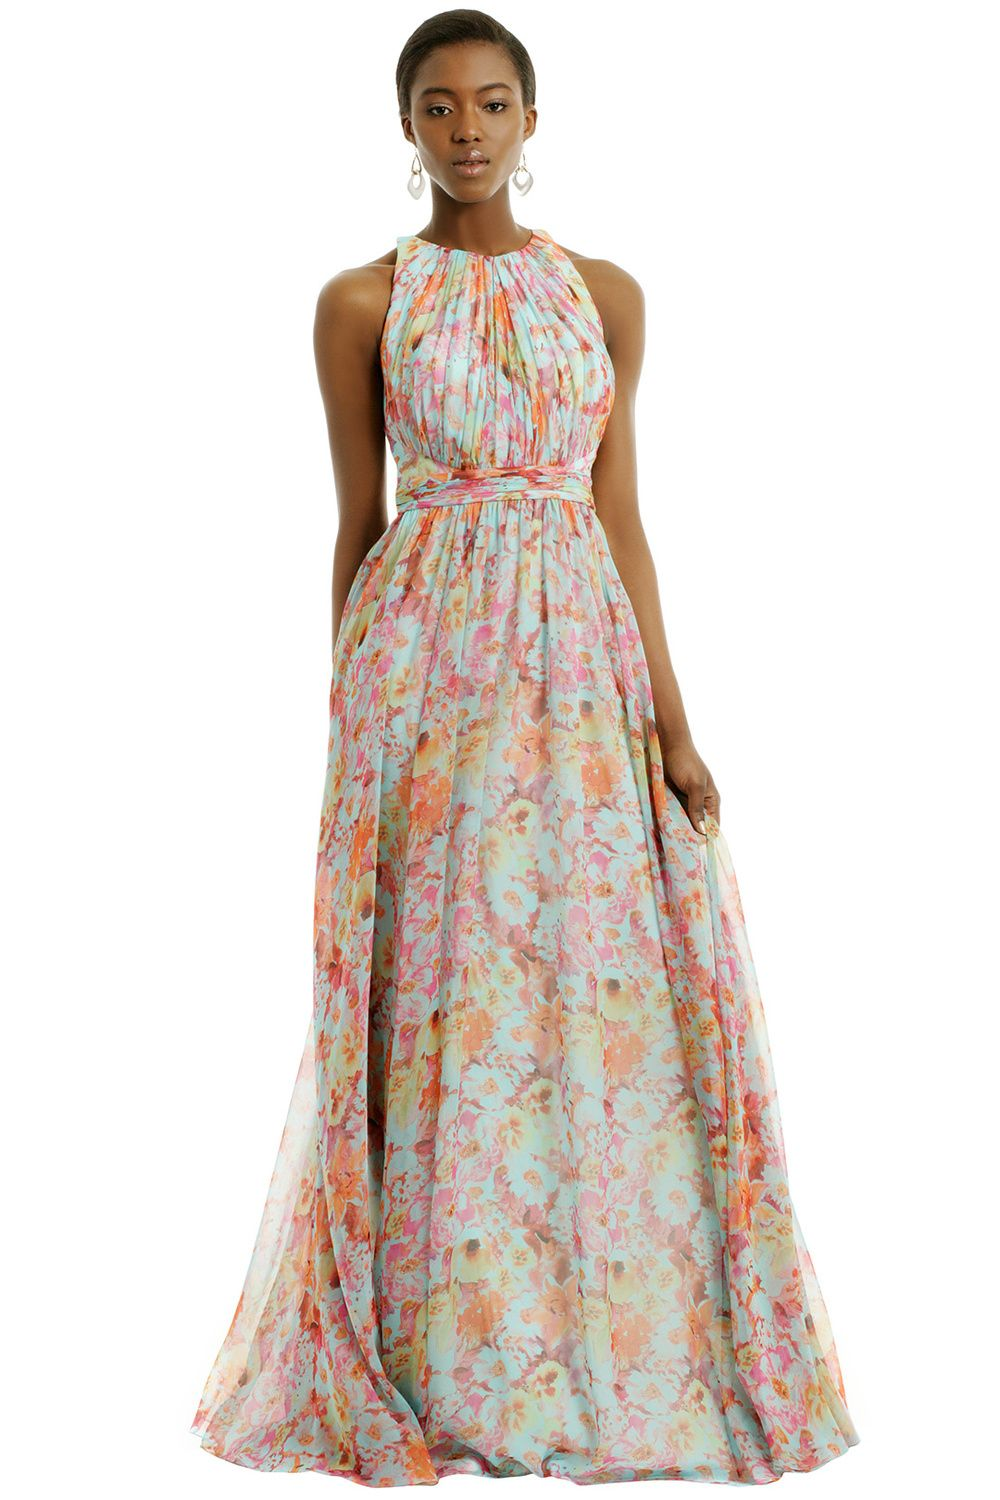 Mother Of the Bride Garden Wedding Dresses - Country Dresses for Weddings  Check more at http bf3cc052da